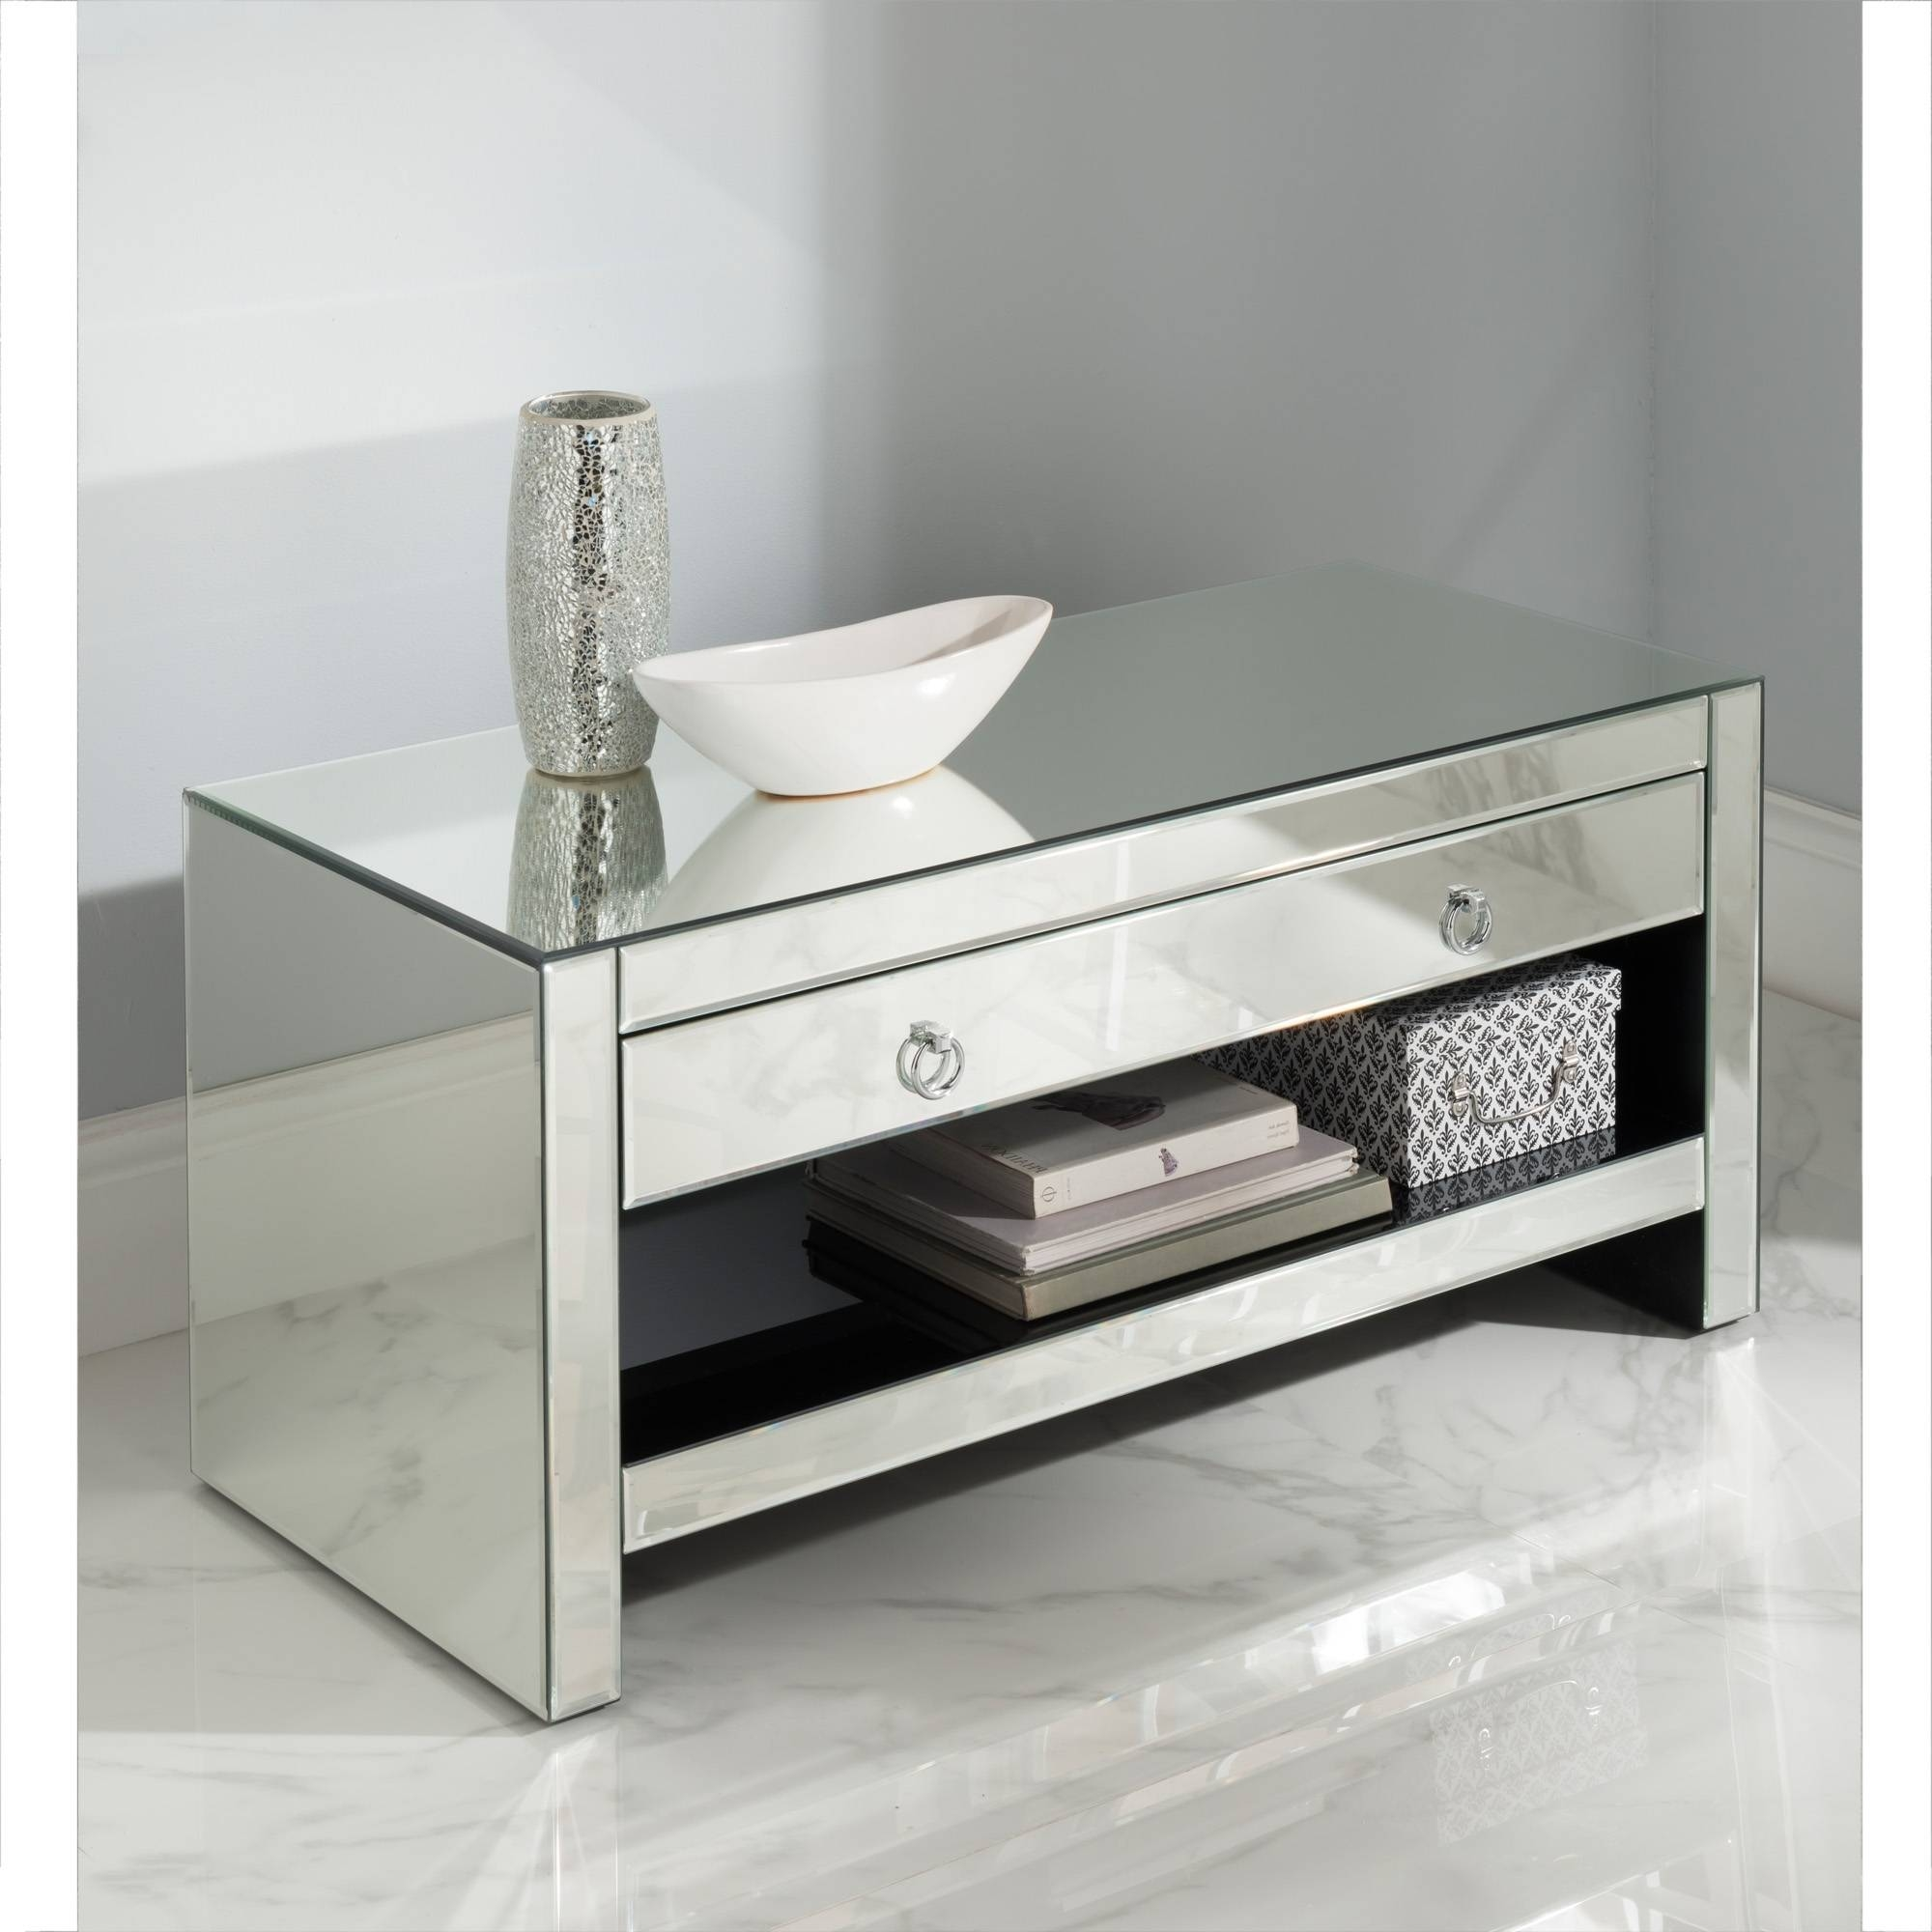 Mirrored Tv Cabinet | Glass Venetian Furniture | Homesdirect365 Throughout Mirrored Tv Cabinets Furniture (View 4 of 15)